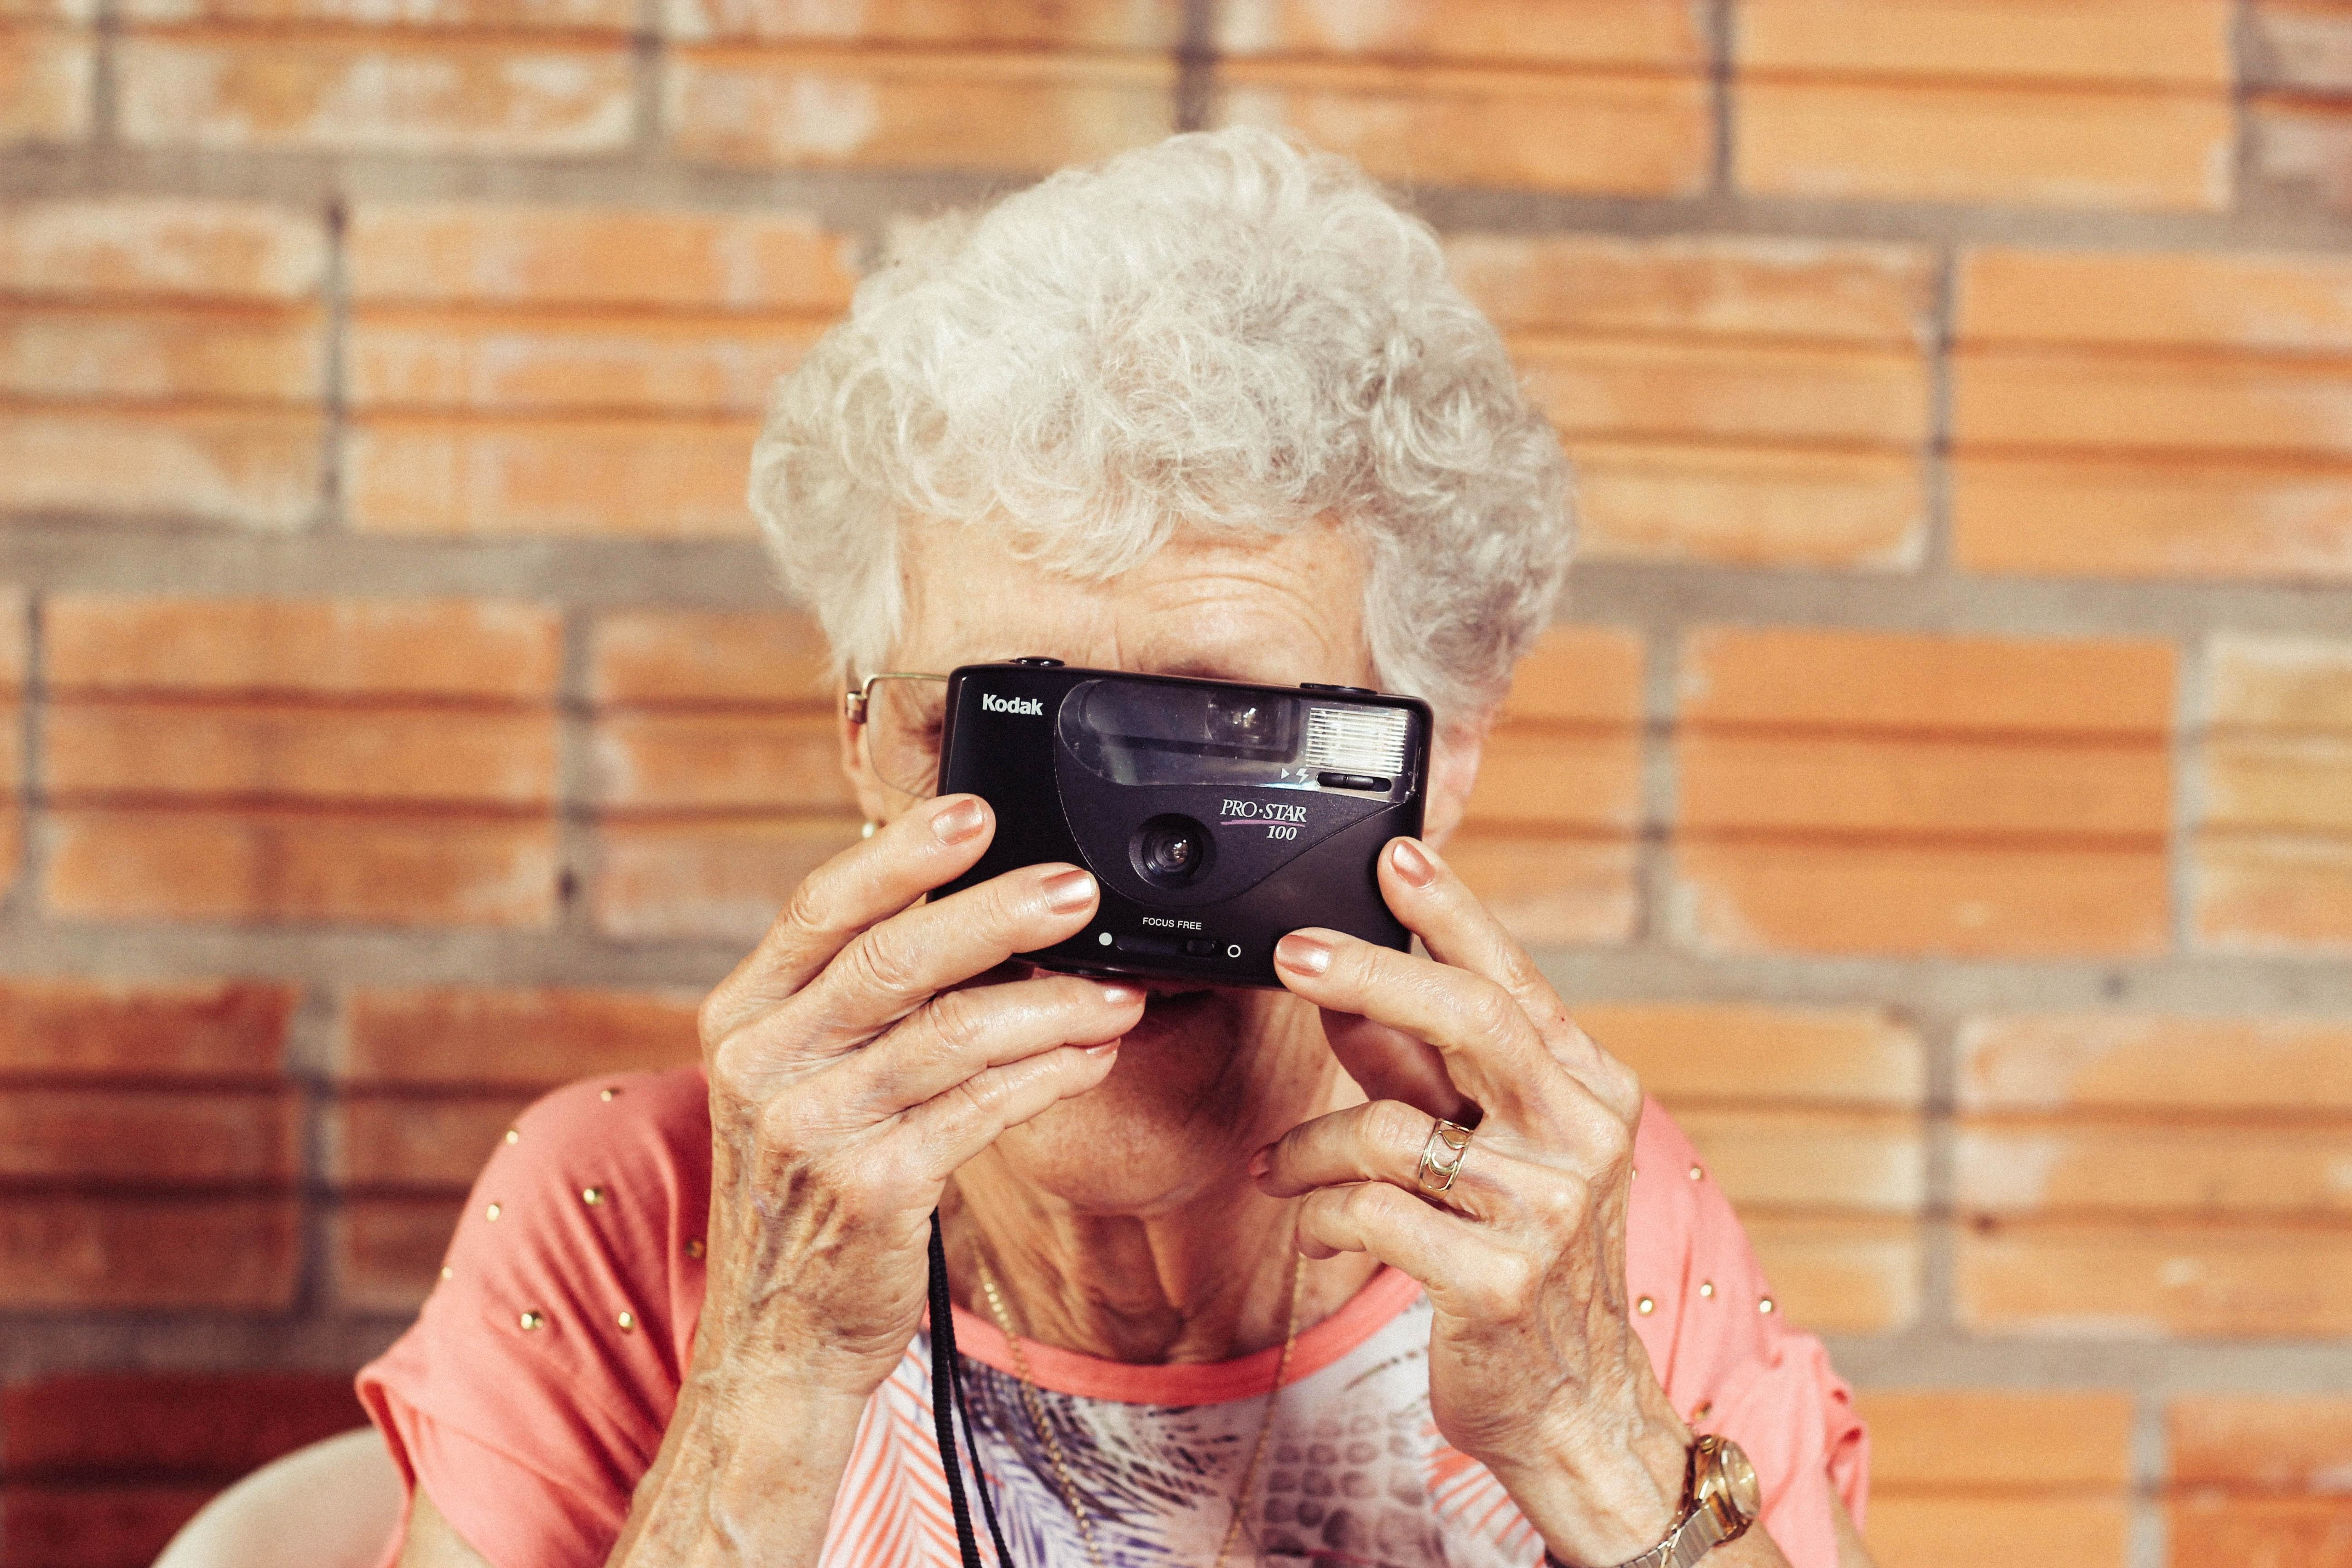 October 1 is the International Day of Older Persons.